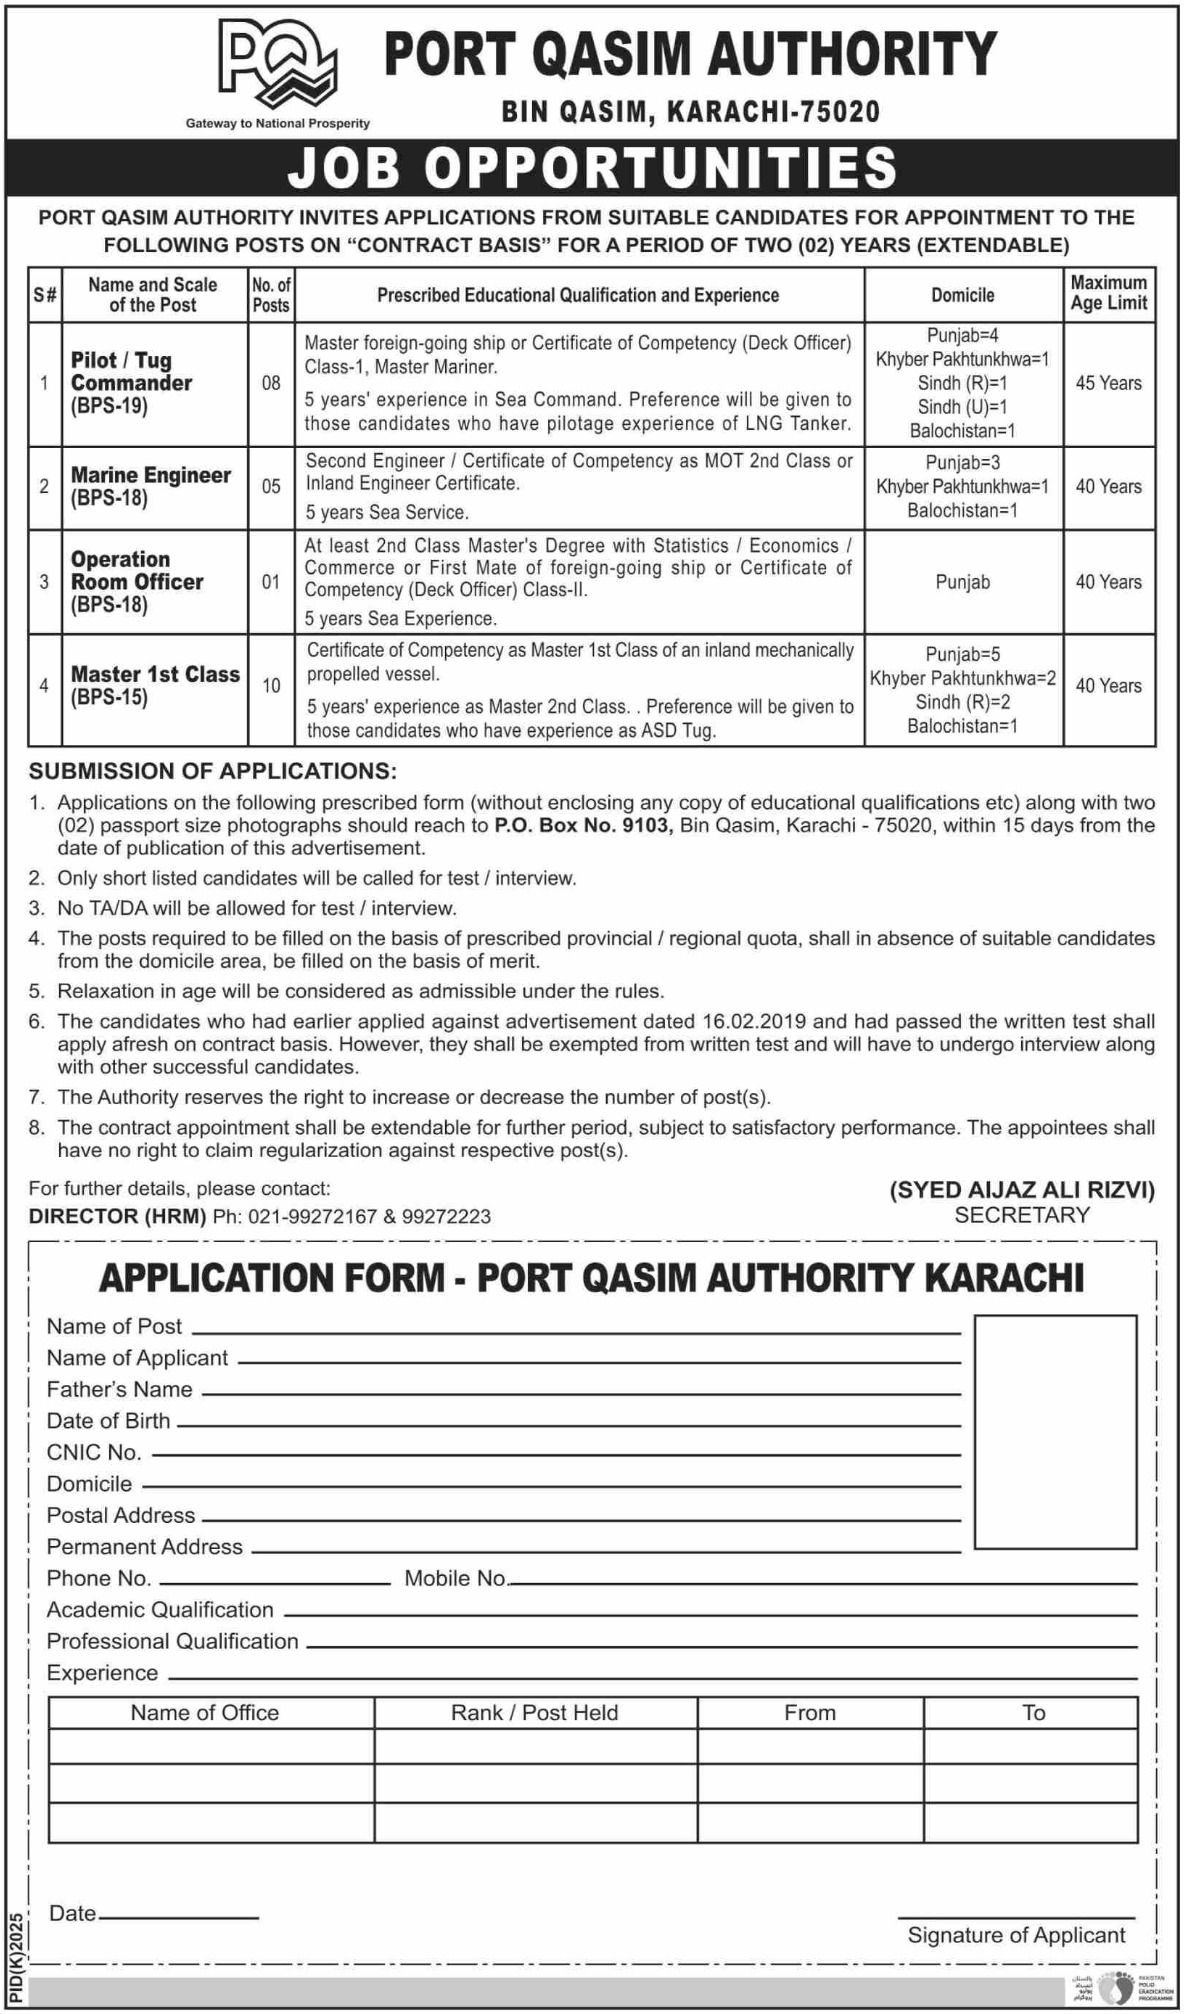 Port Qasim Authority Jobs 2019 Pakistan